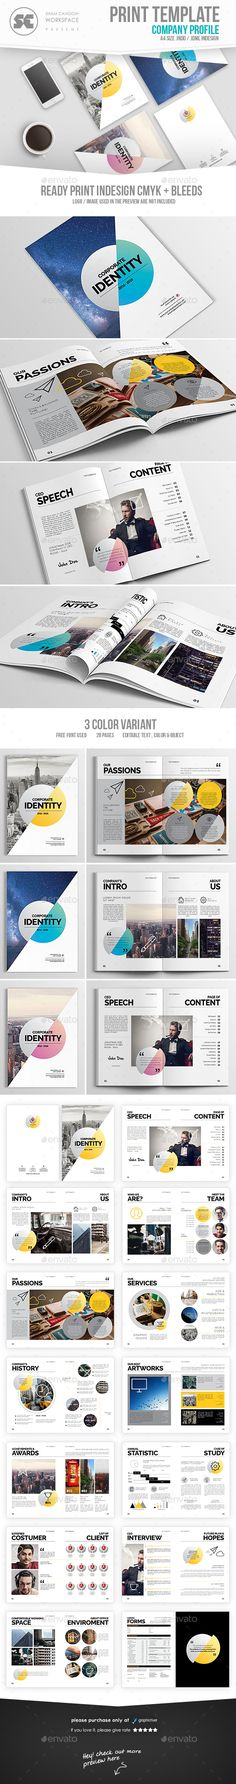 Clean Company Profile Brochure Template InDesign INDD #download - company profile sample download